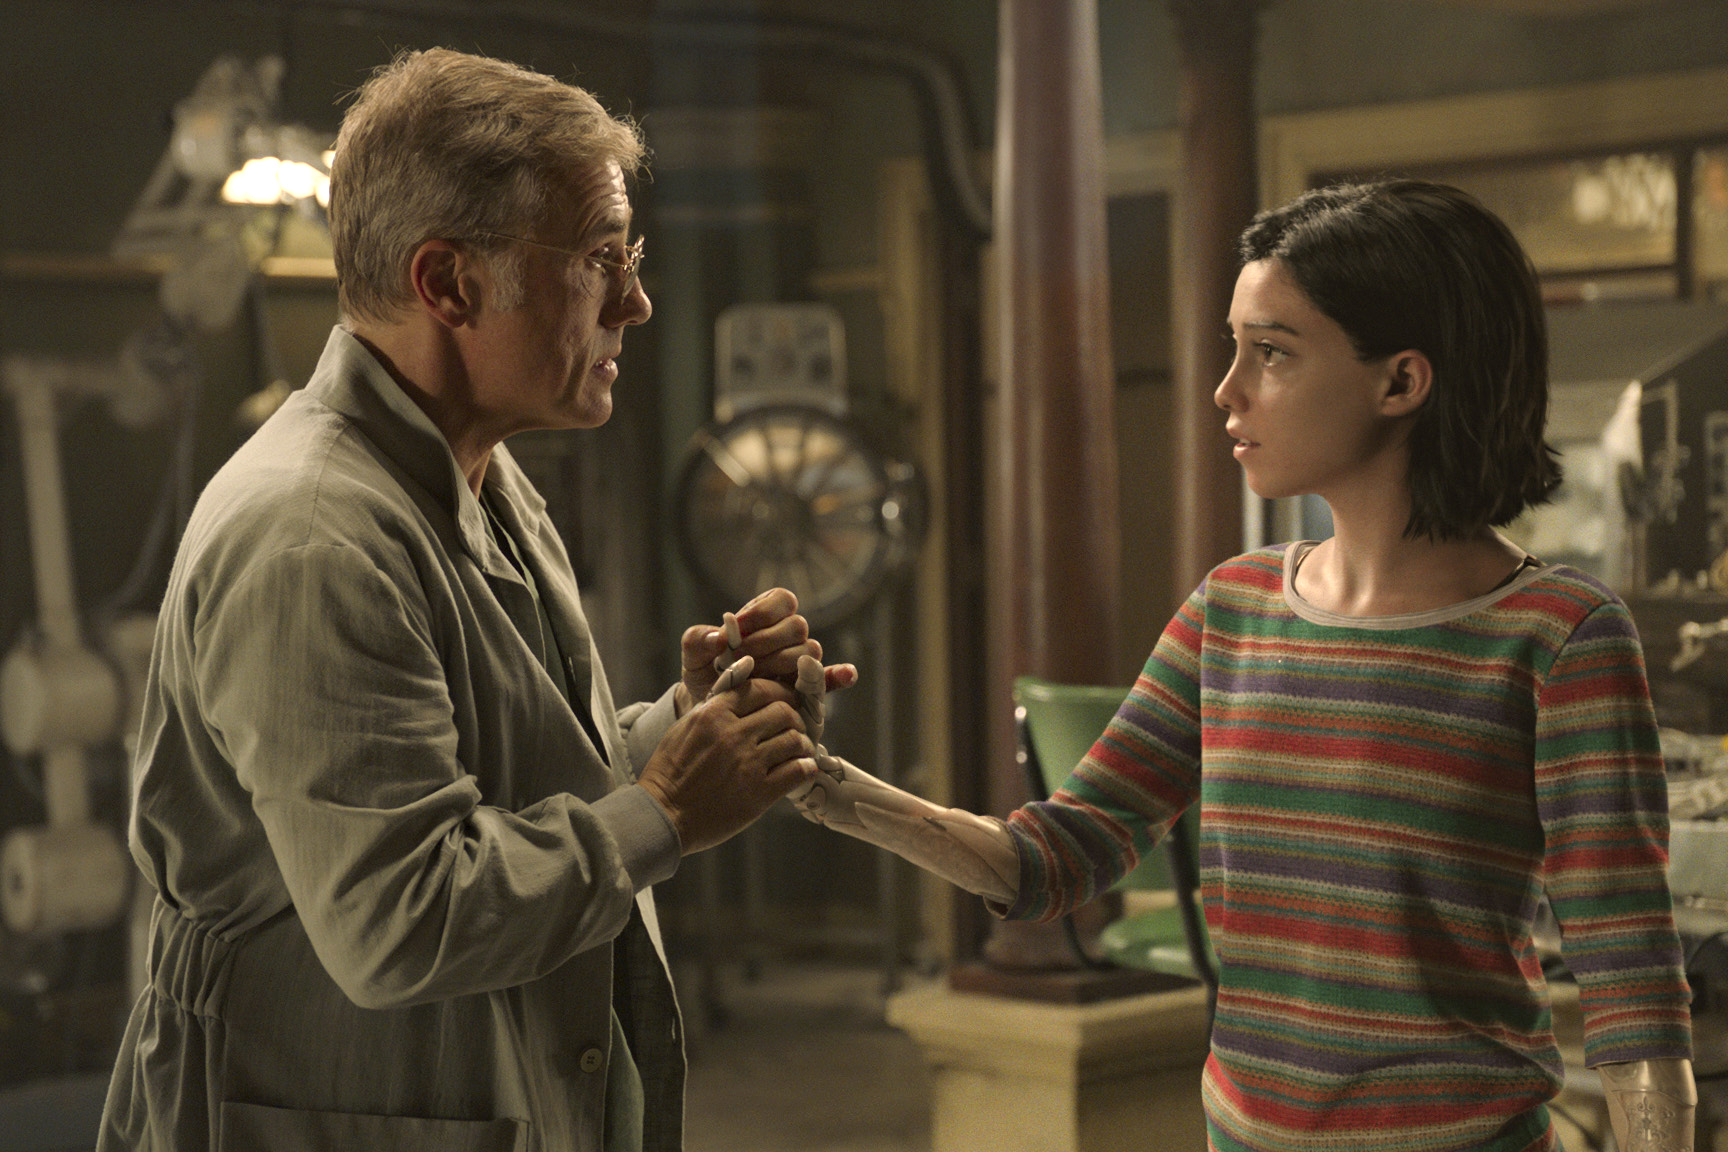 Christoph Waltz and Rosa Salazar star in a scene from the movie